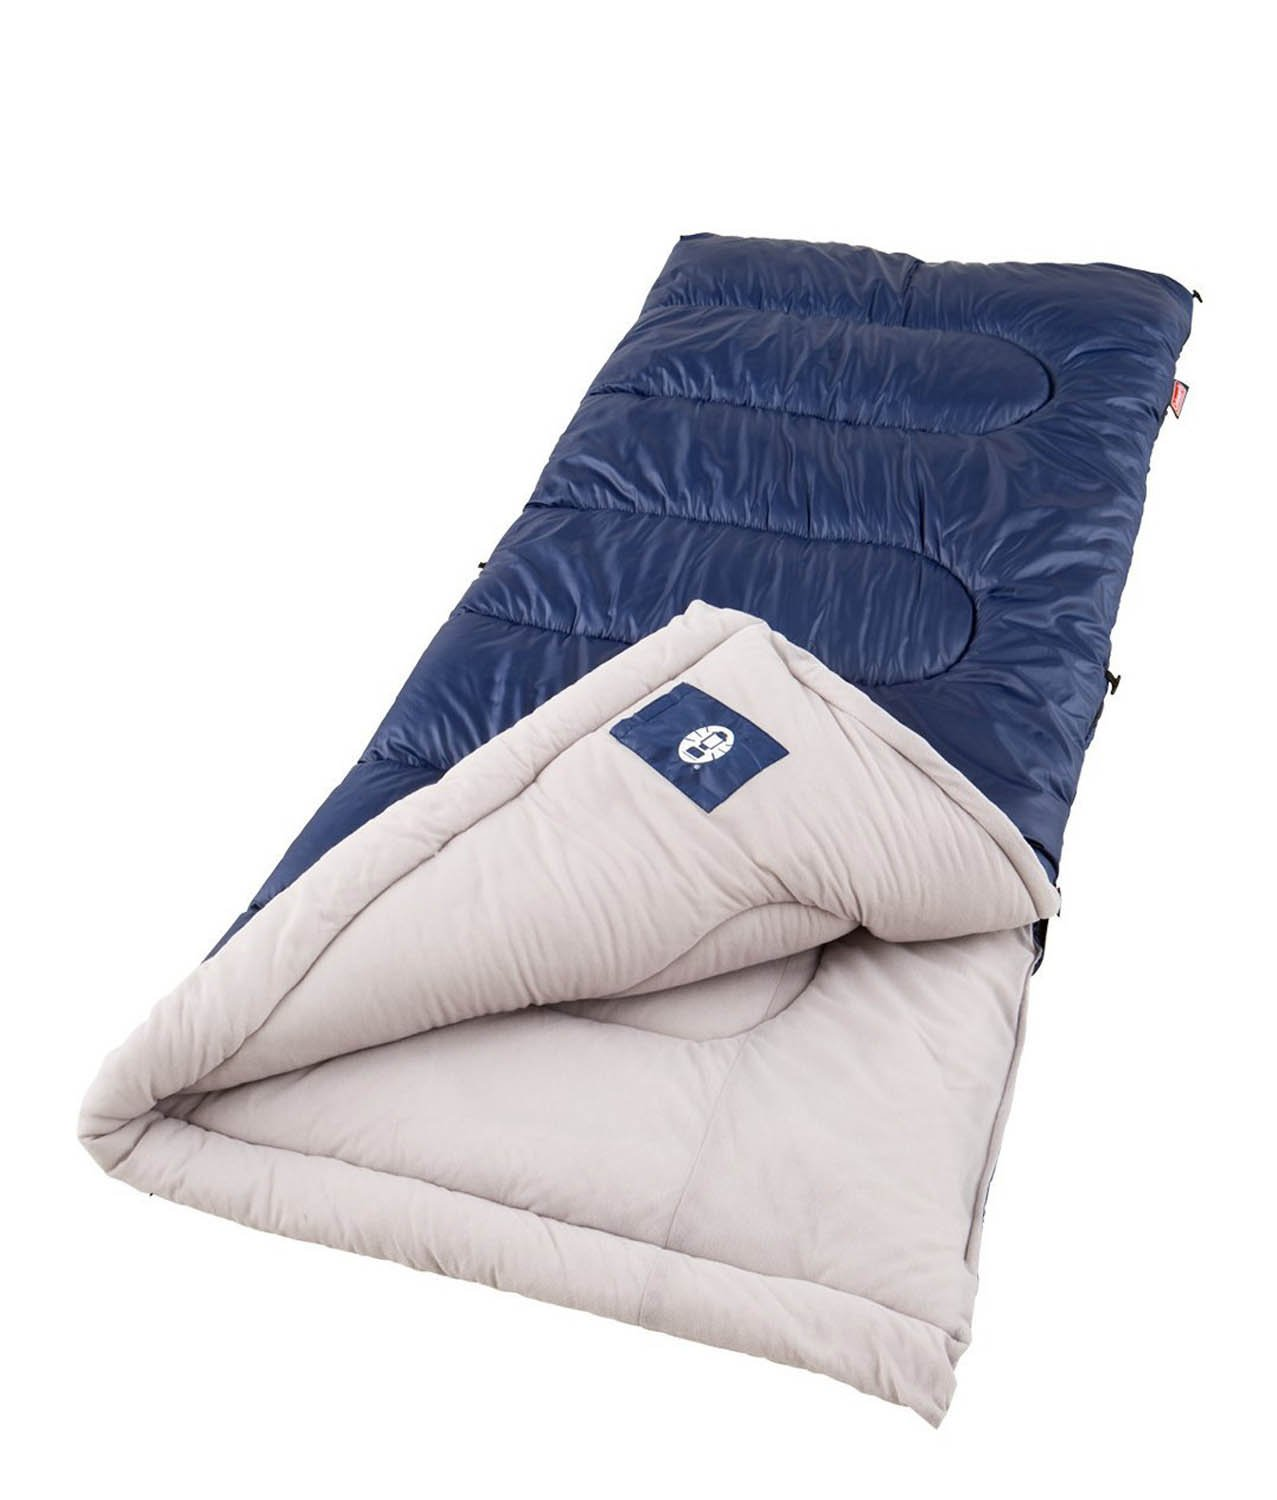 An image of Coleman Brazos Men's 30 Degree Polyester Sleeping Bag